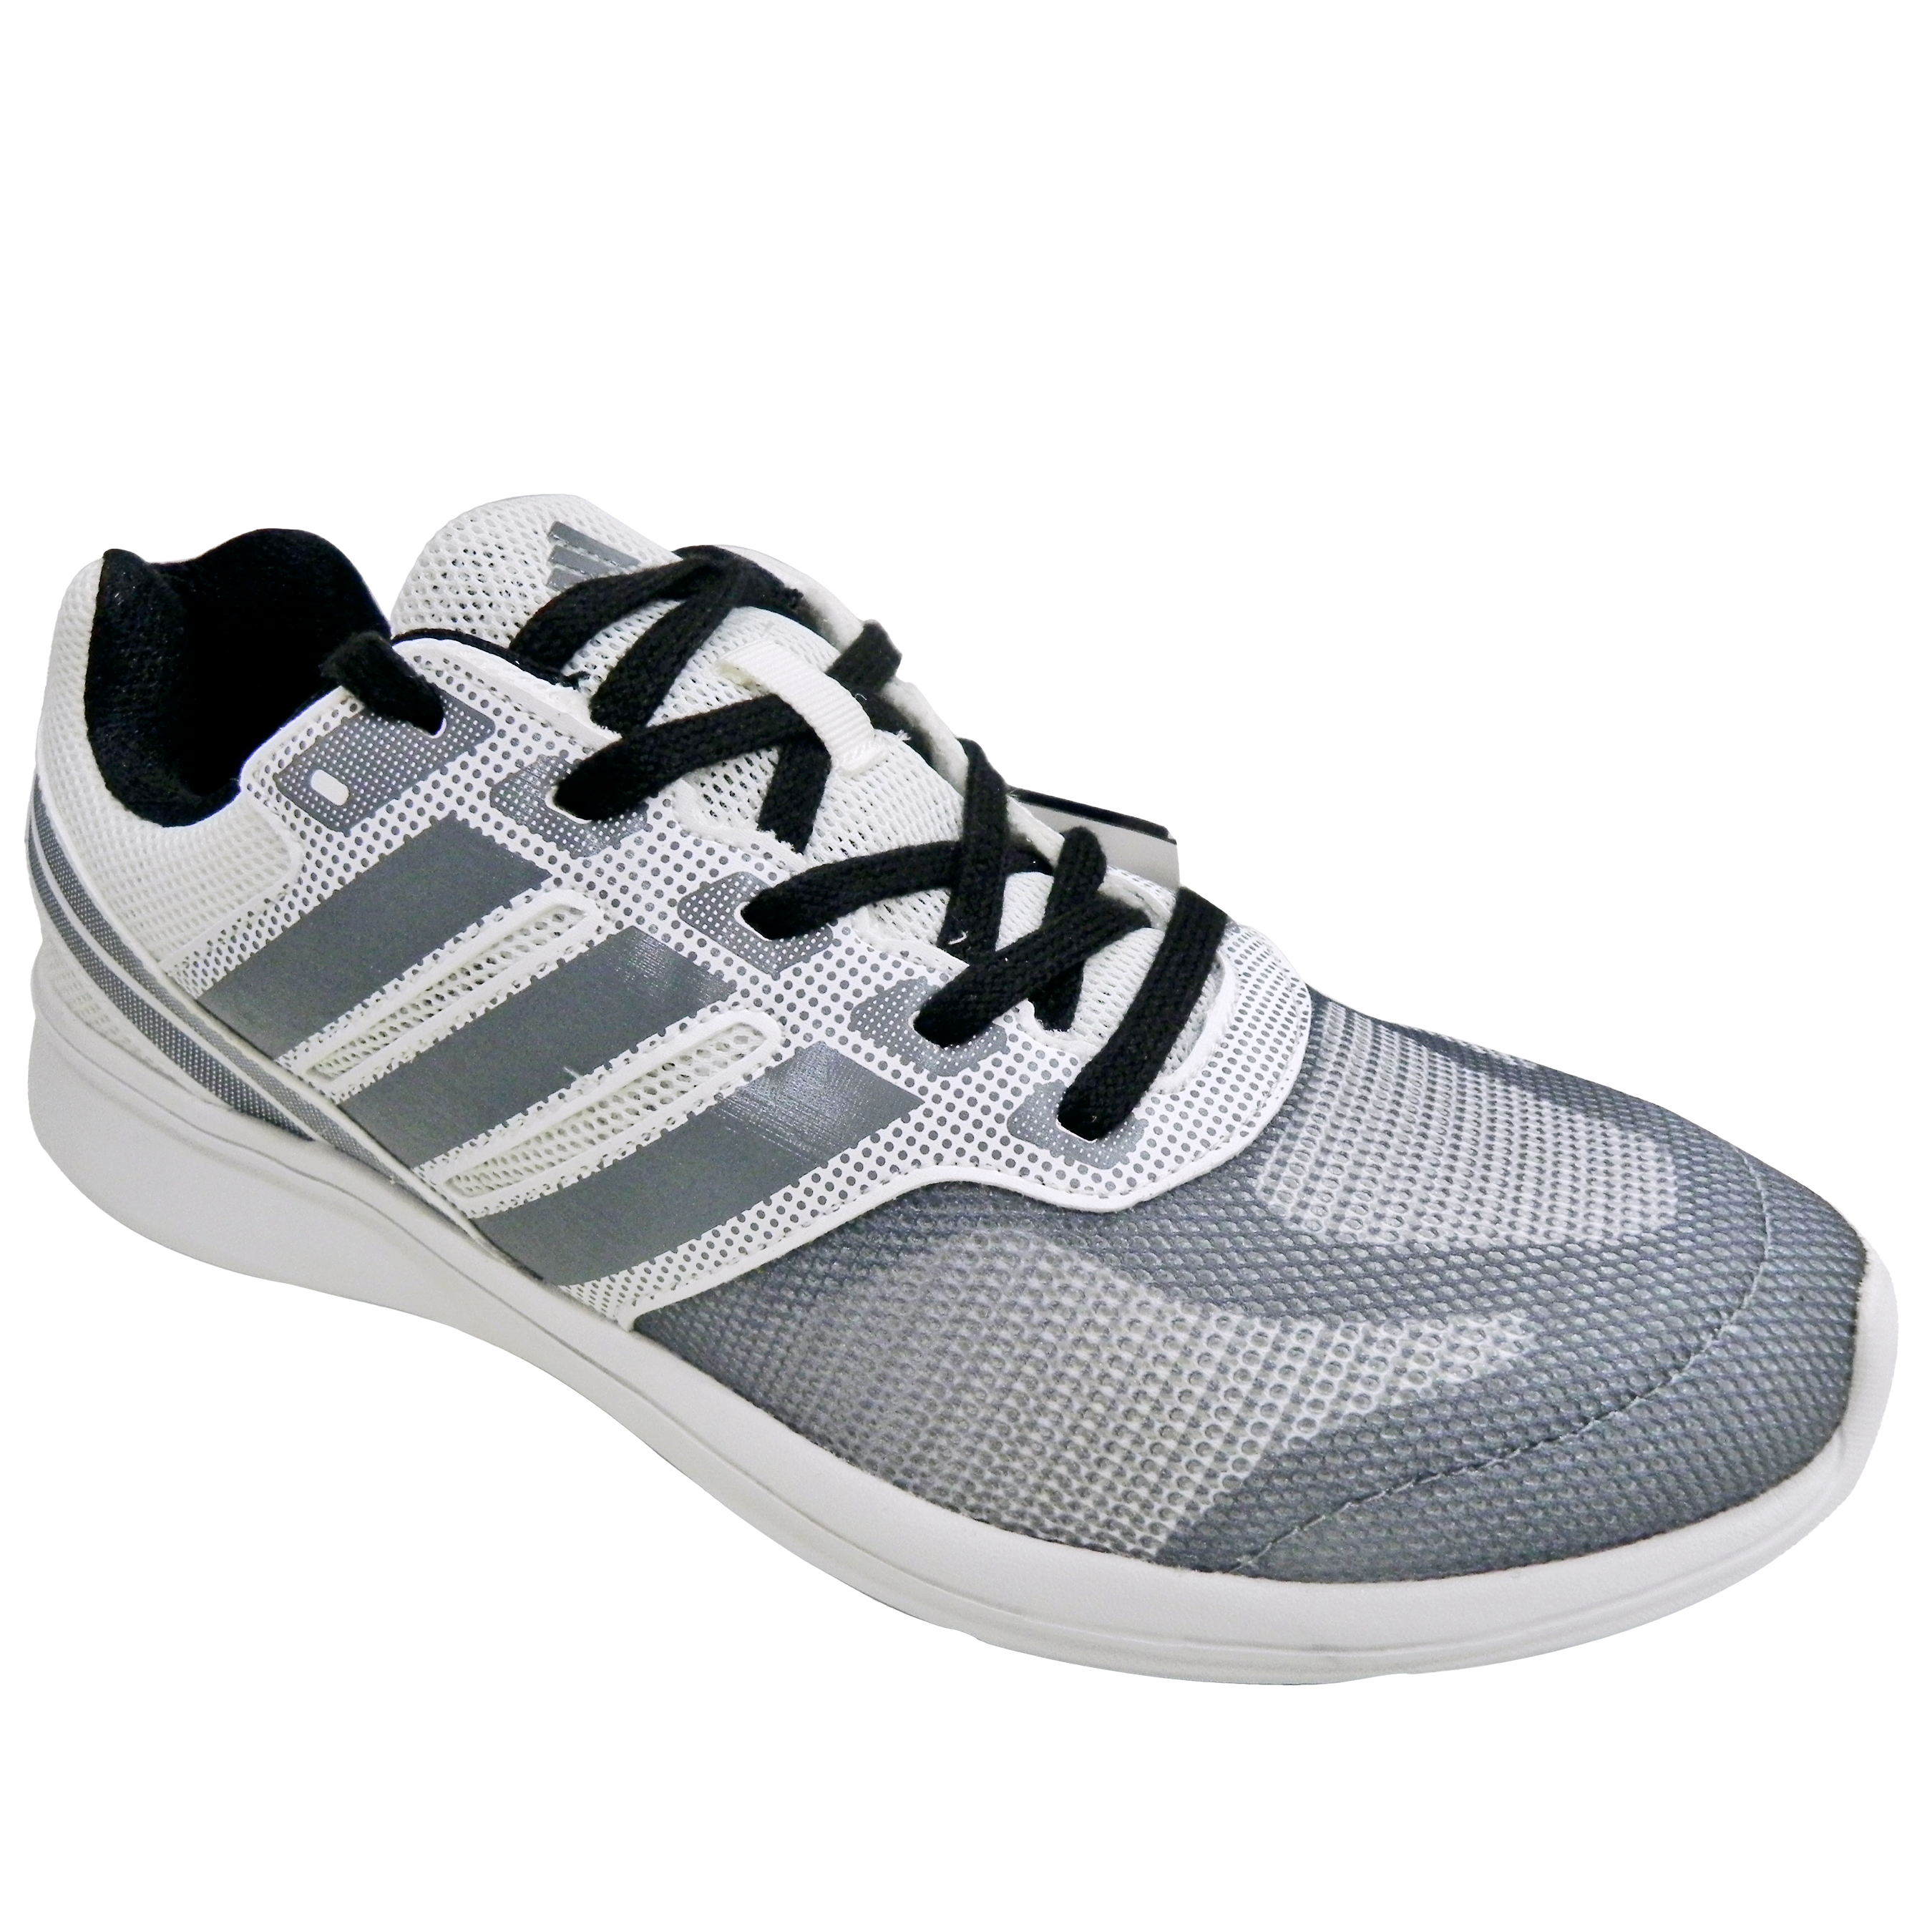 Adidas shoe sole pattern png. White grey sports dhar